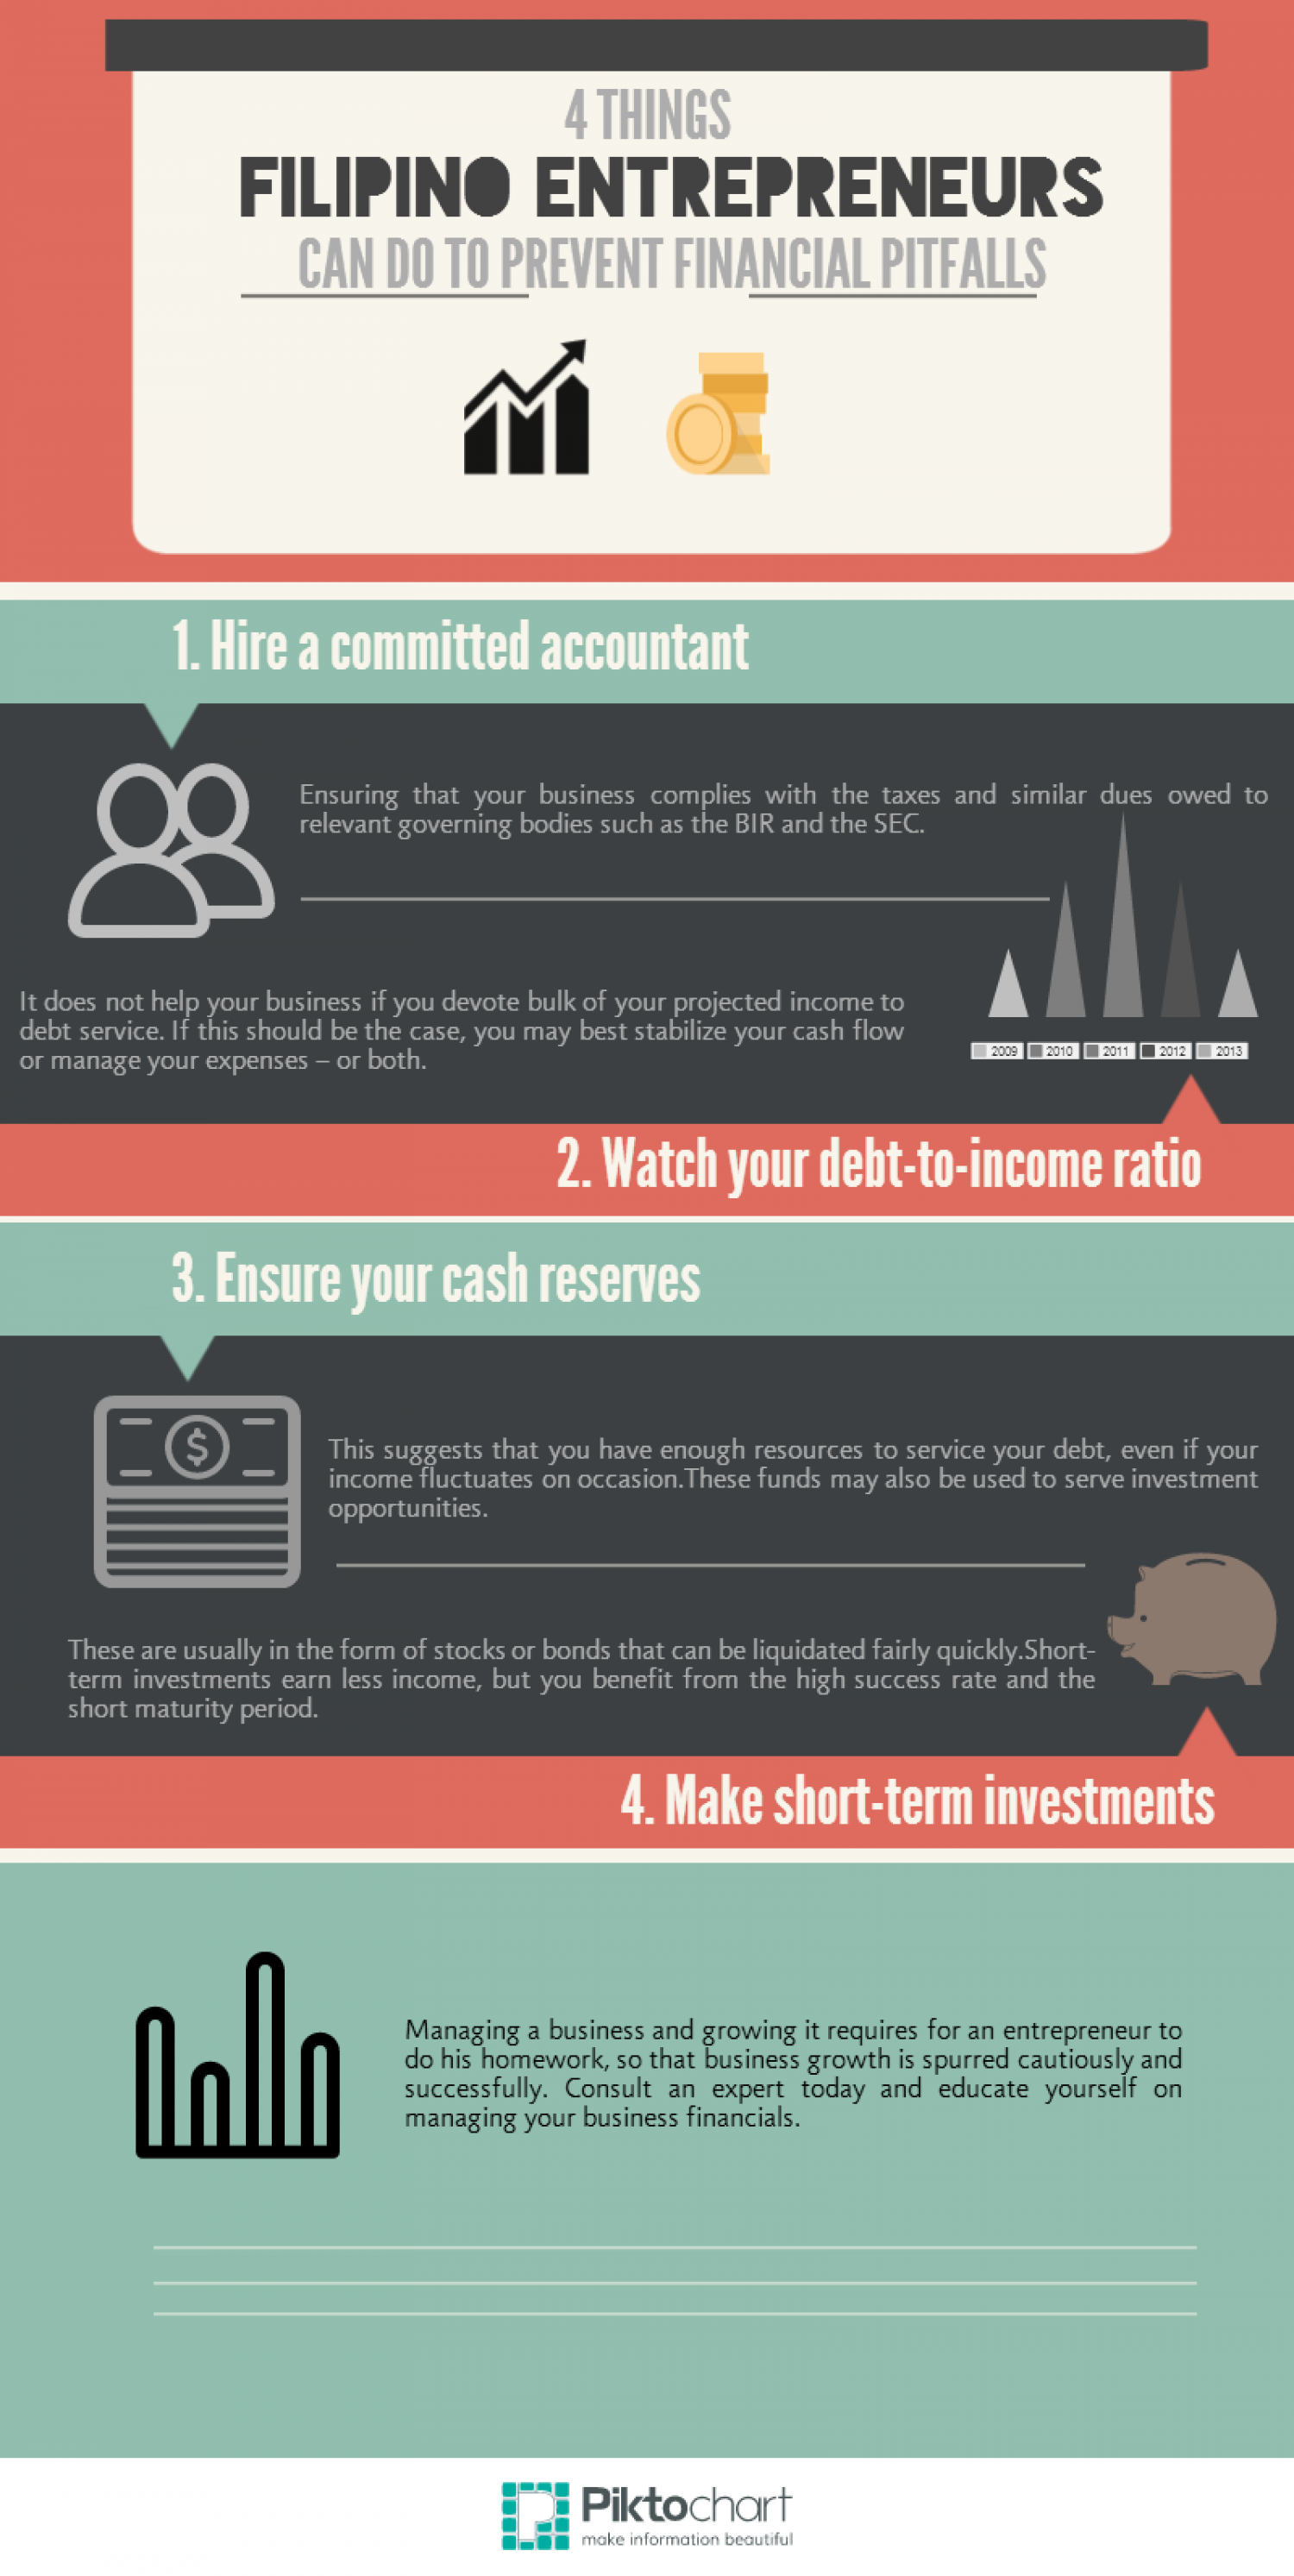 4 Things Filipino Entrepreneurs Can Do to Prevent Financial Pitfalls Infographic